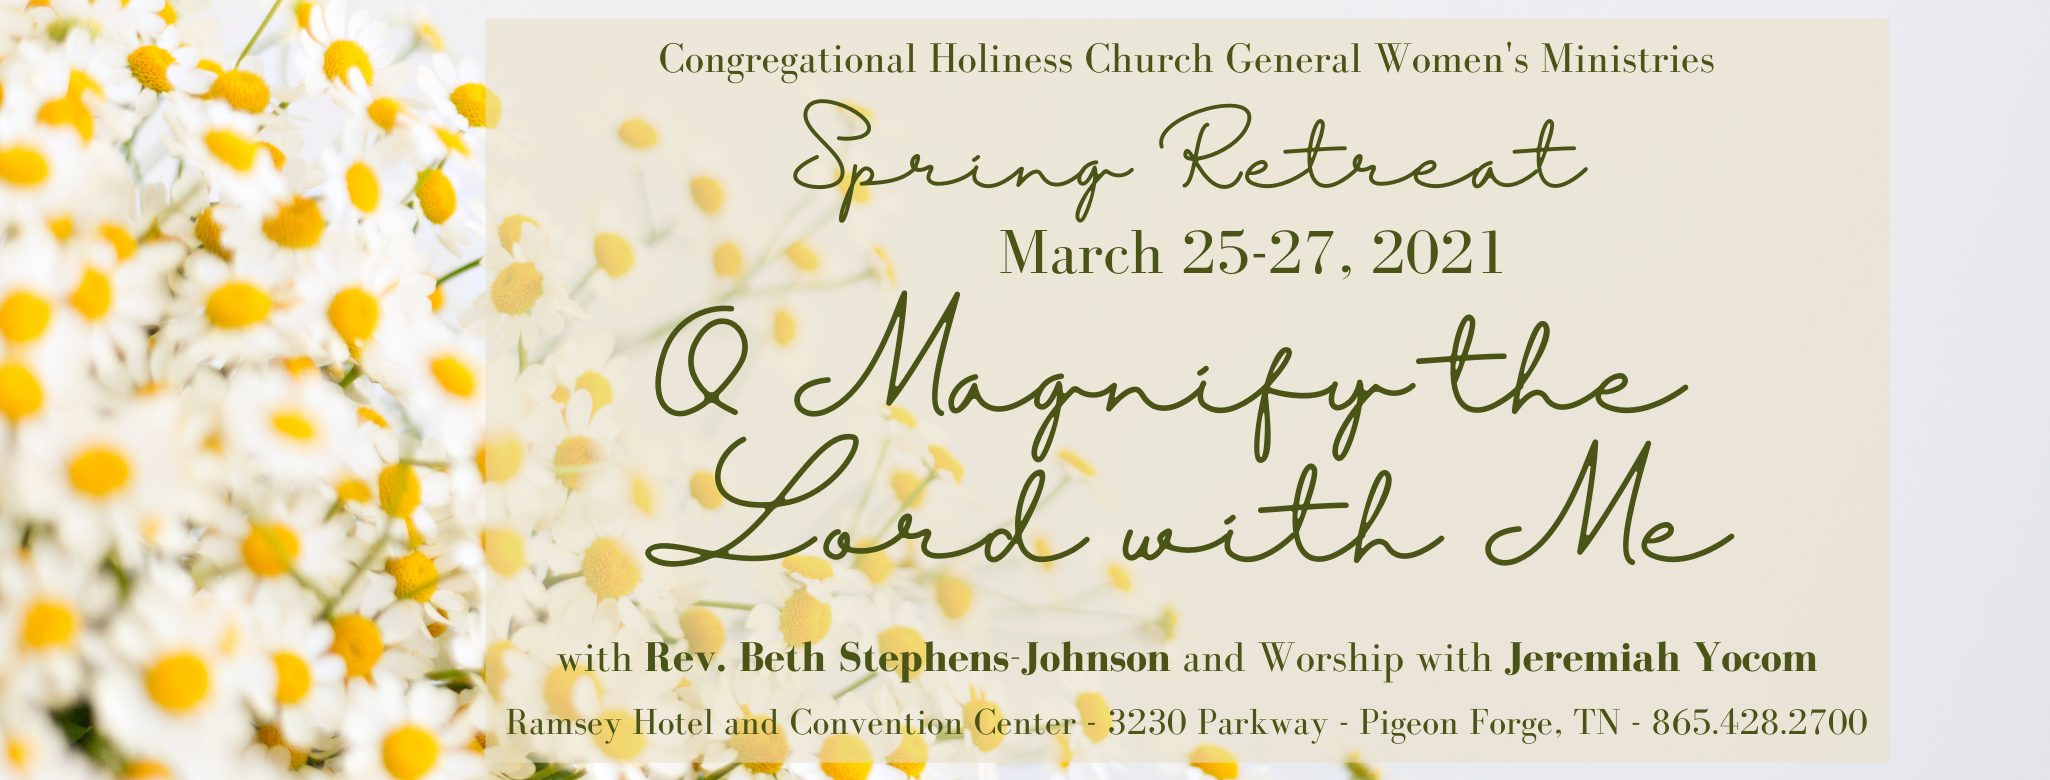 Congregational Holiness Church General Women's Ministries